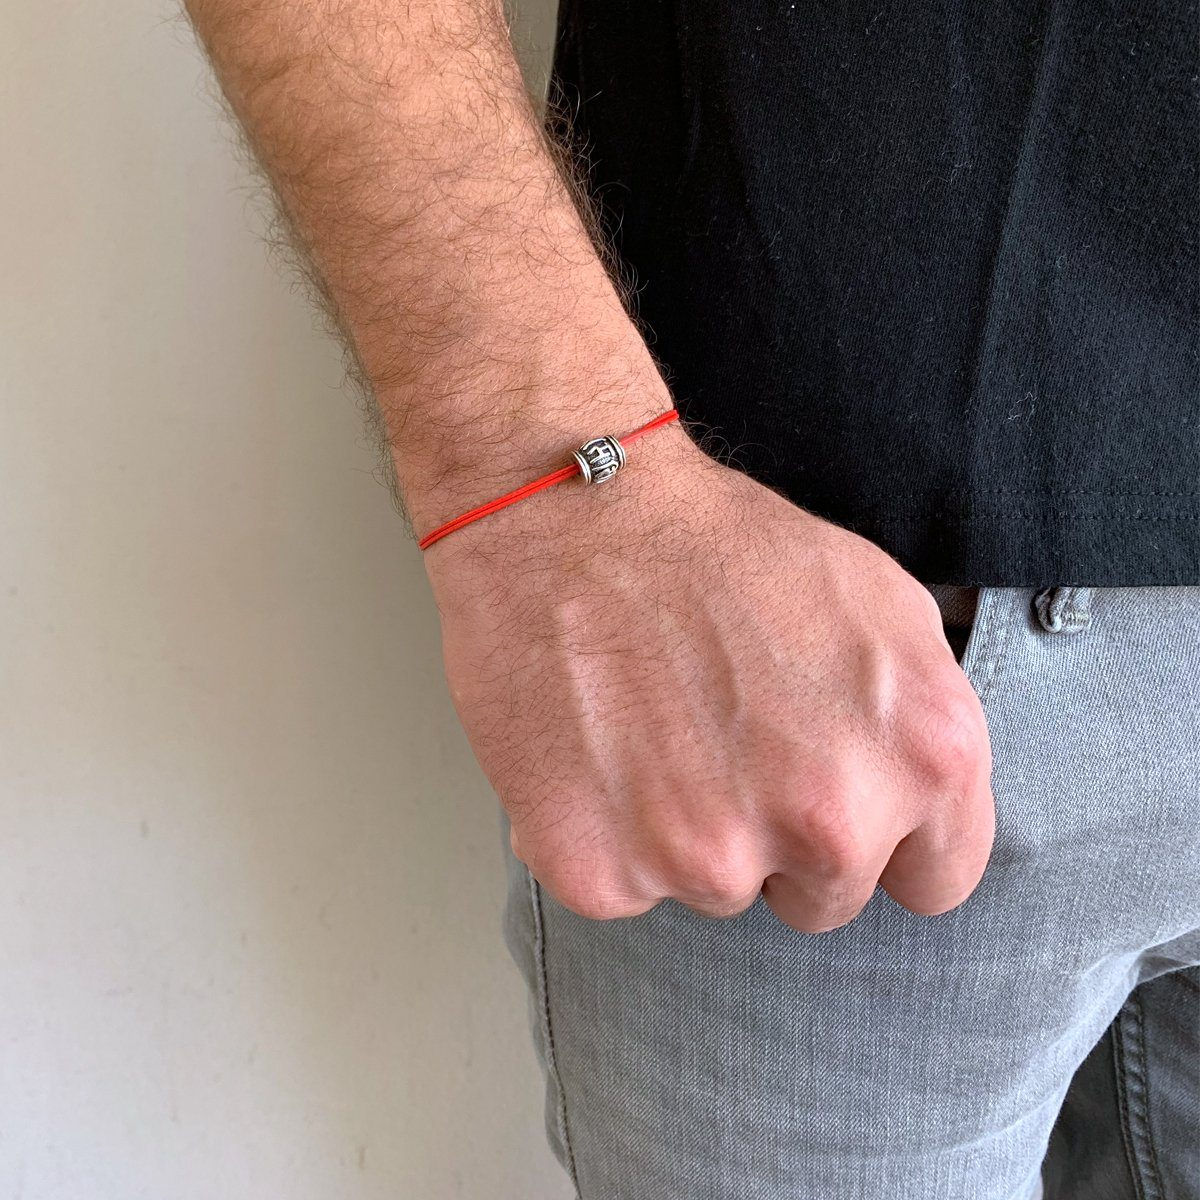 Bracelet - Tibetan Mantra 1 Mm Red String